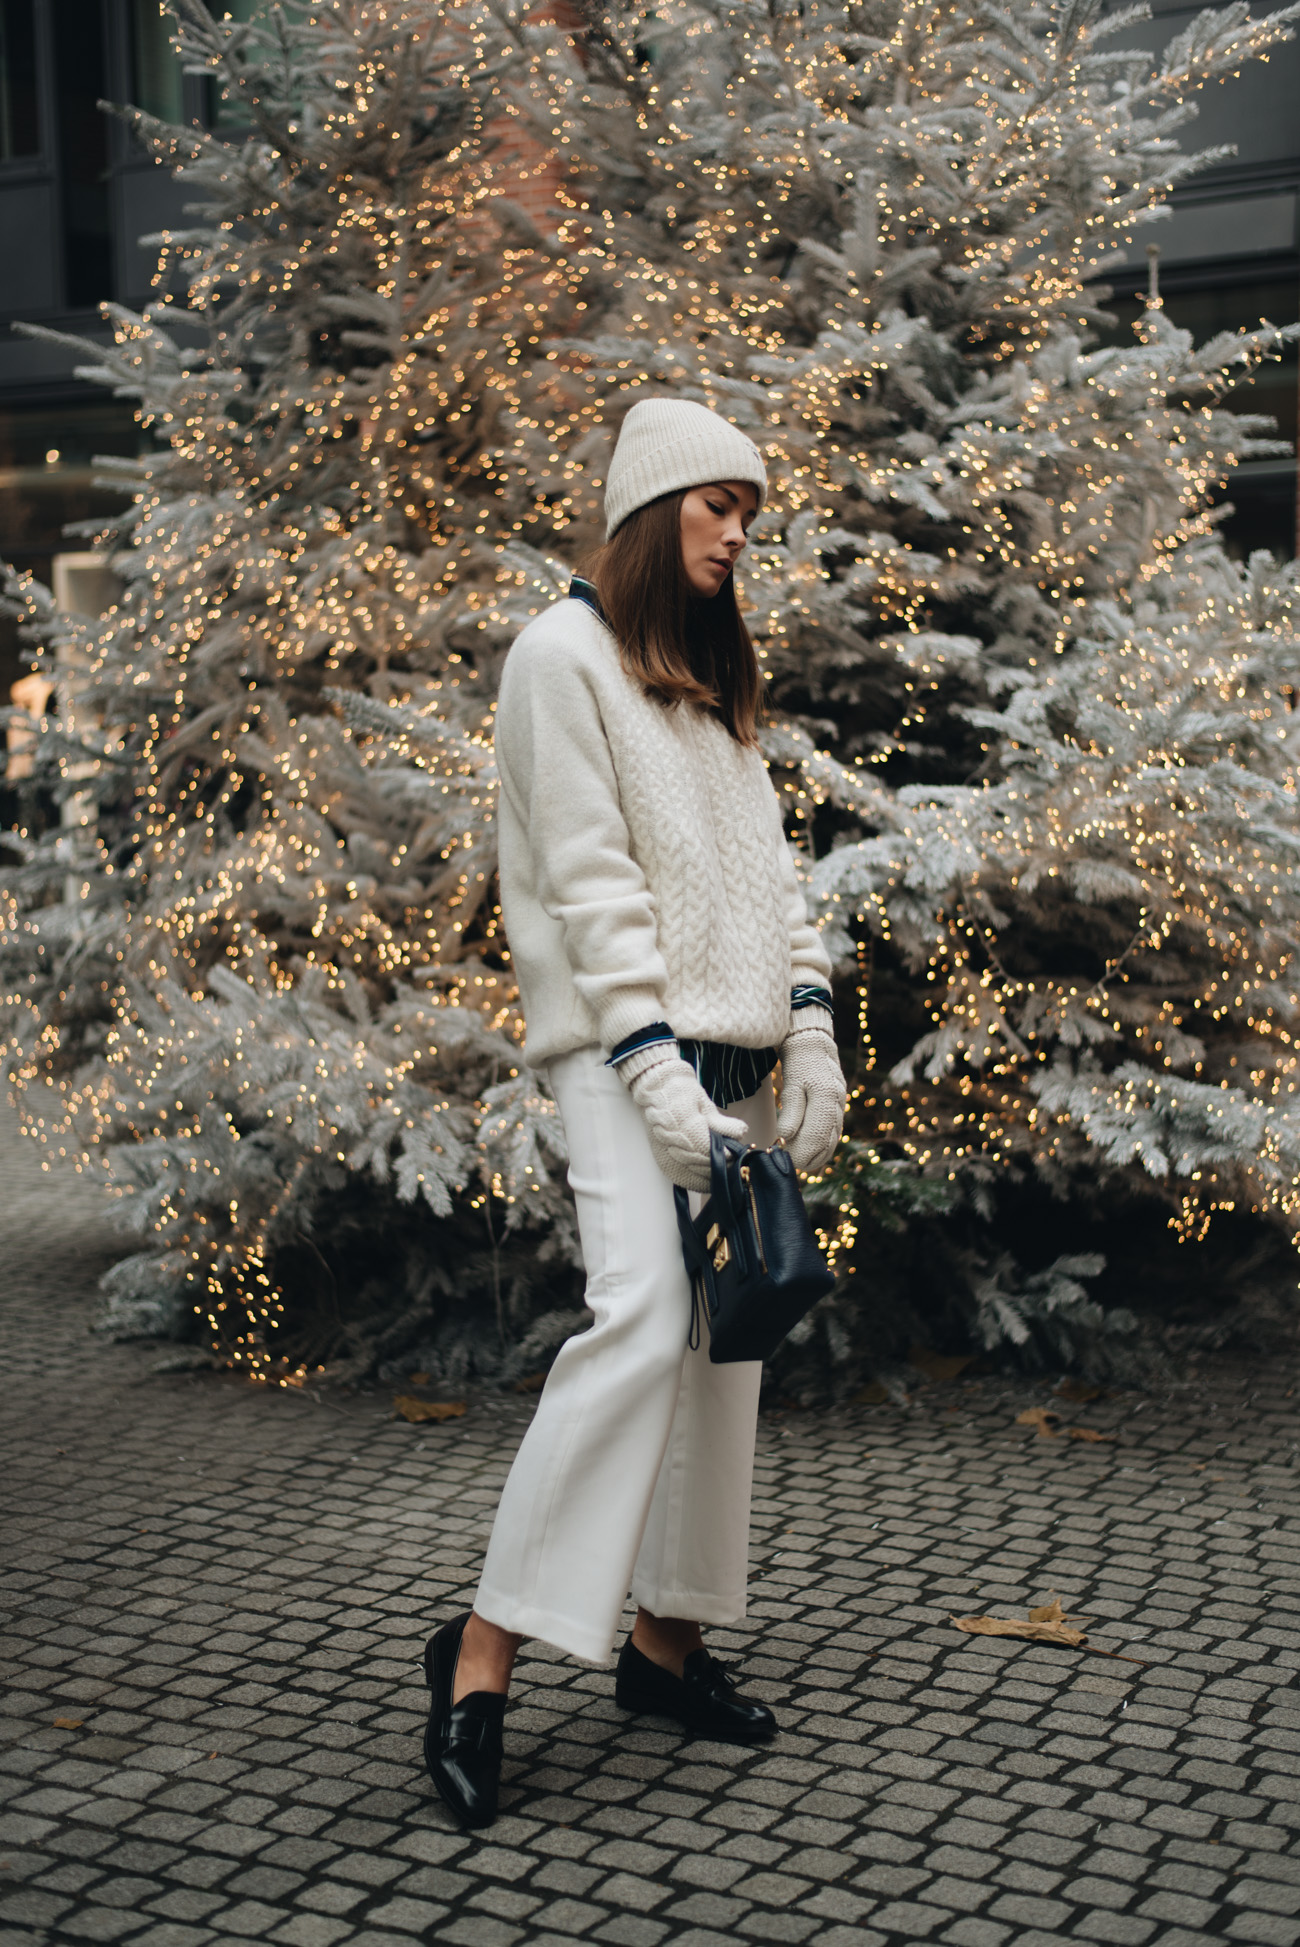 All-White-Winter-look-weiß-im-winter-tragen-strick-mütze-fake-fur-schal-kunstpelz-stola-fashiioncarpet-nina-schwichtenberg